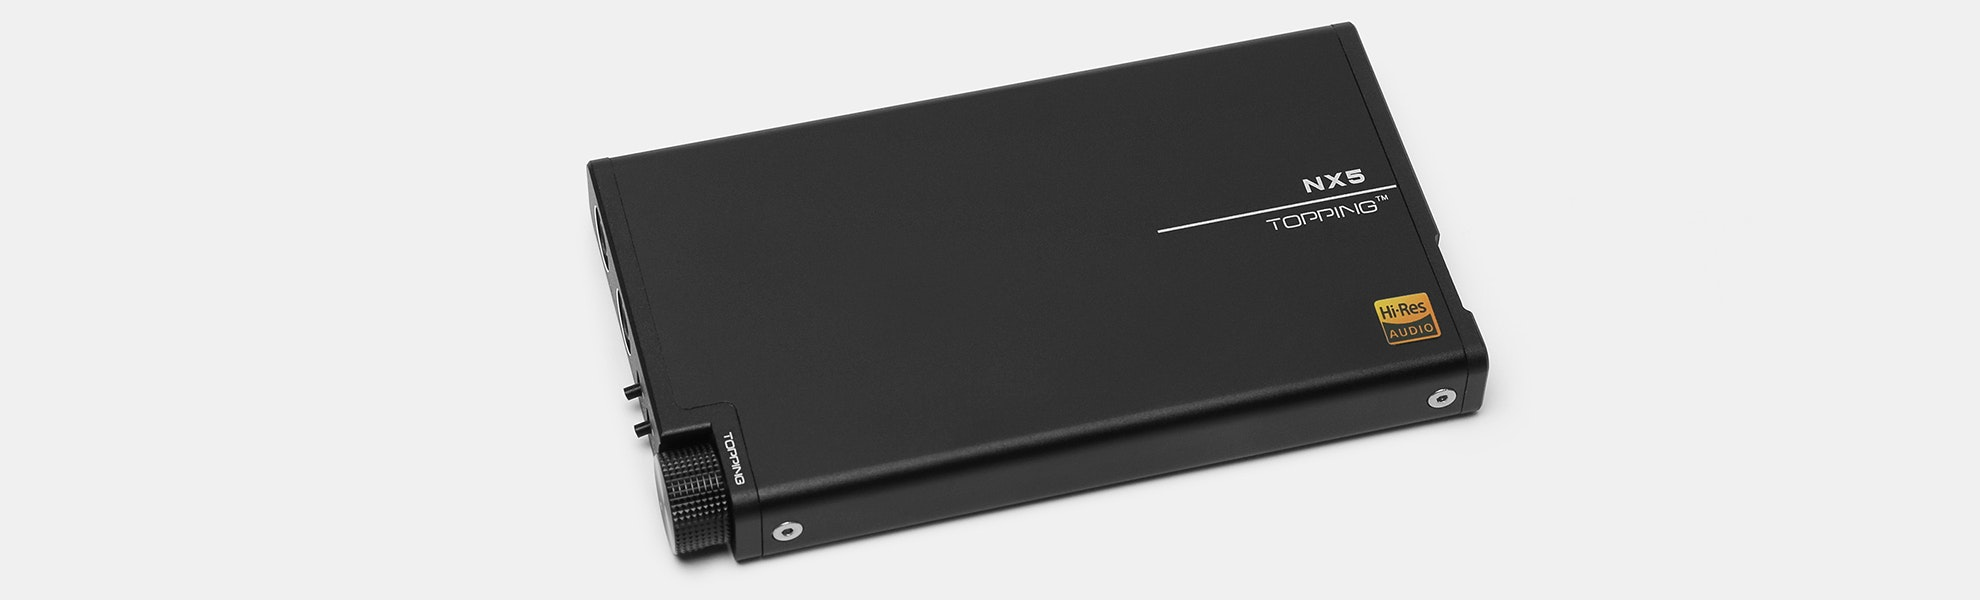 Topping NX5 Portable Headphone Amp